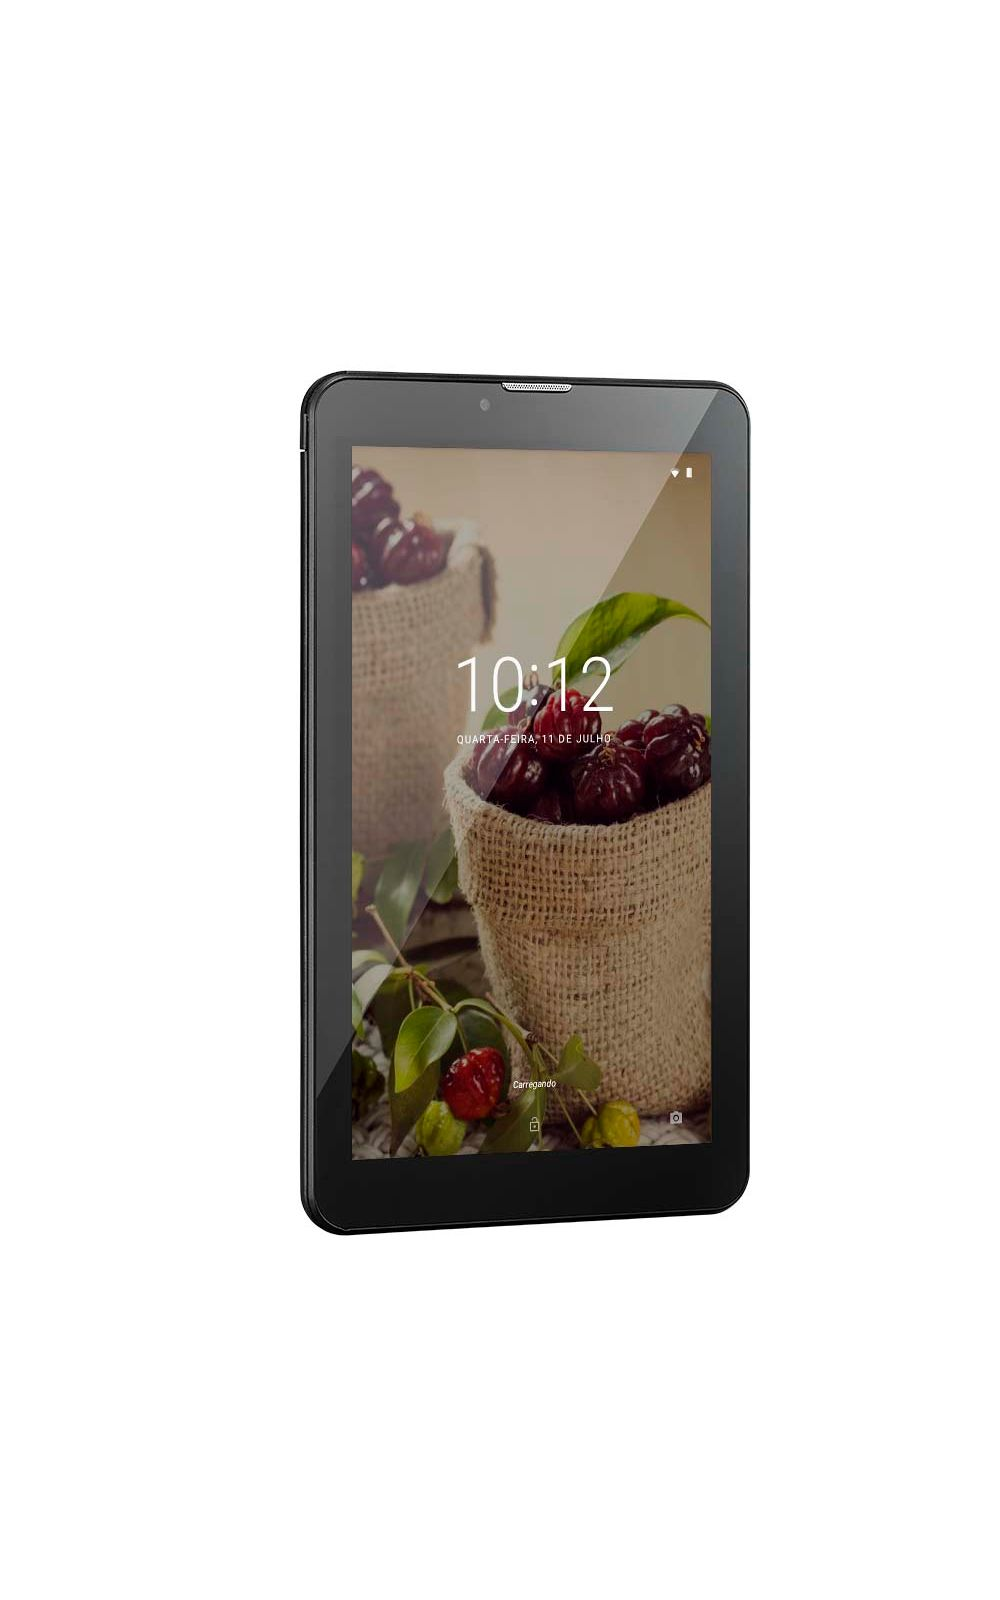 Foto 2 - Tablet Multilaser M7 3G Plus Sênior 1GB 8GB Câmera 2.0 Mp+1.3 Mp Tela 7 Dual Chip Preto - NB294